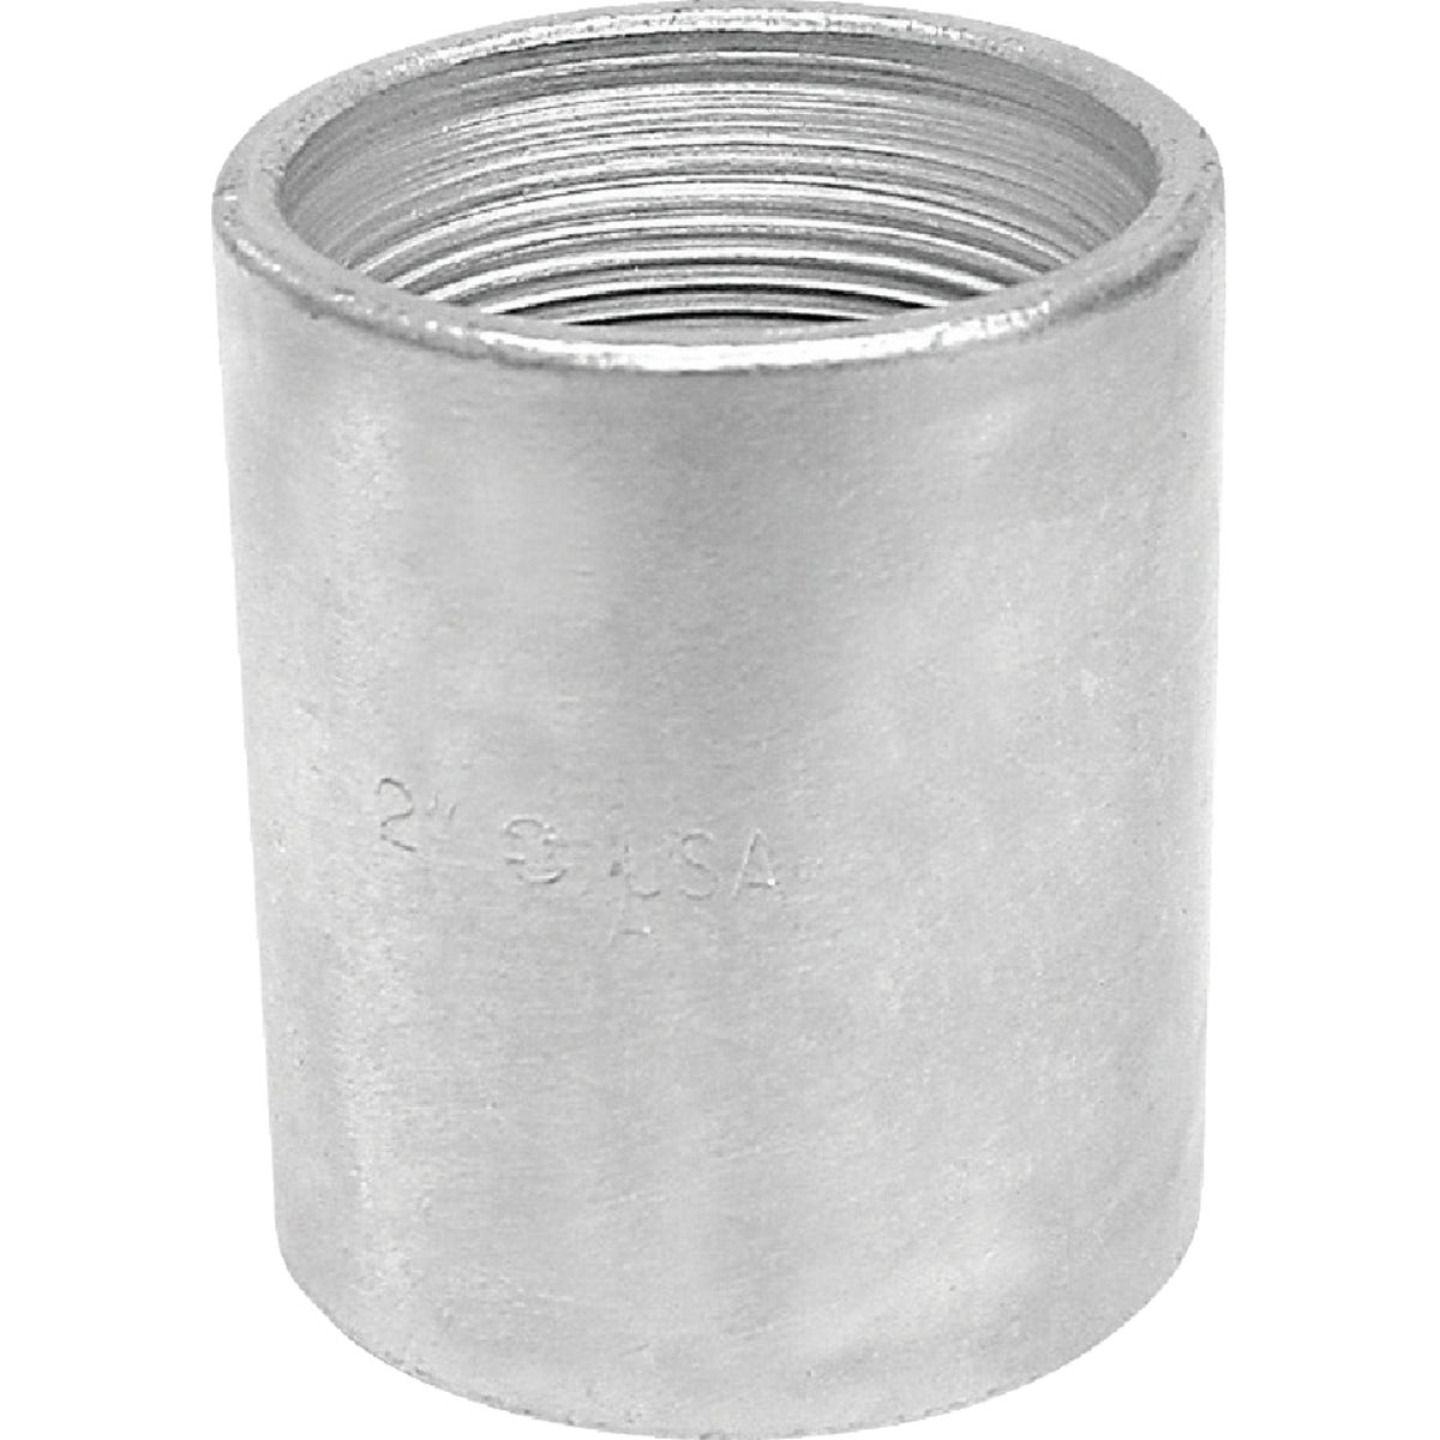 Anvil 1/4 In. x 1/4 In. FPT Standard Merchant Galvanized Coupling Image 1